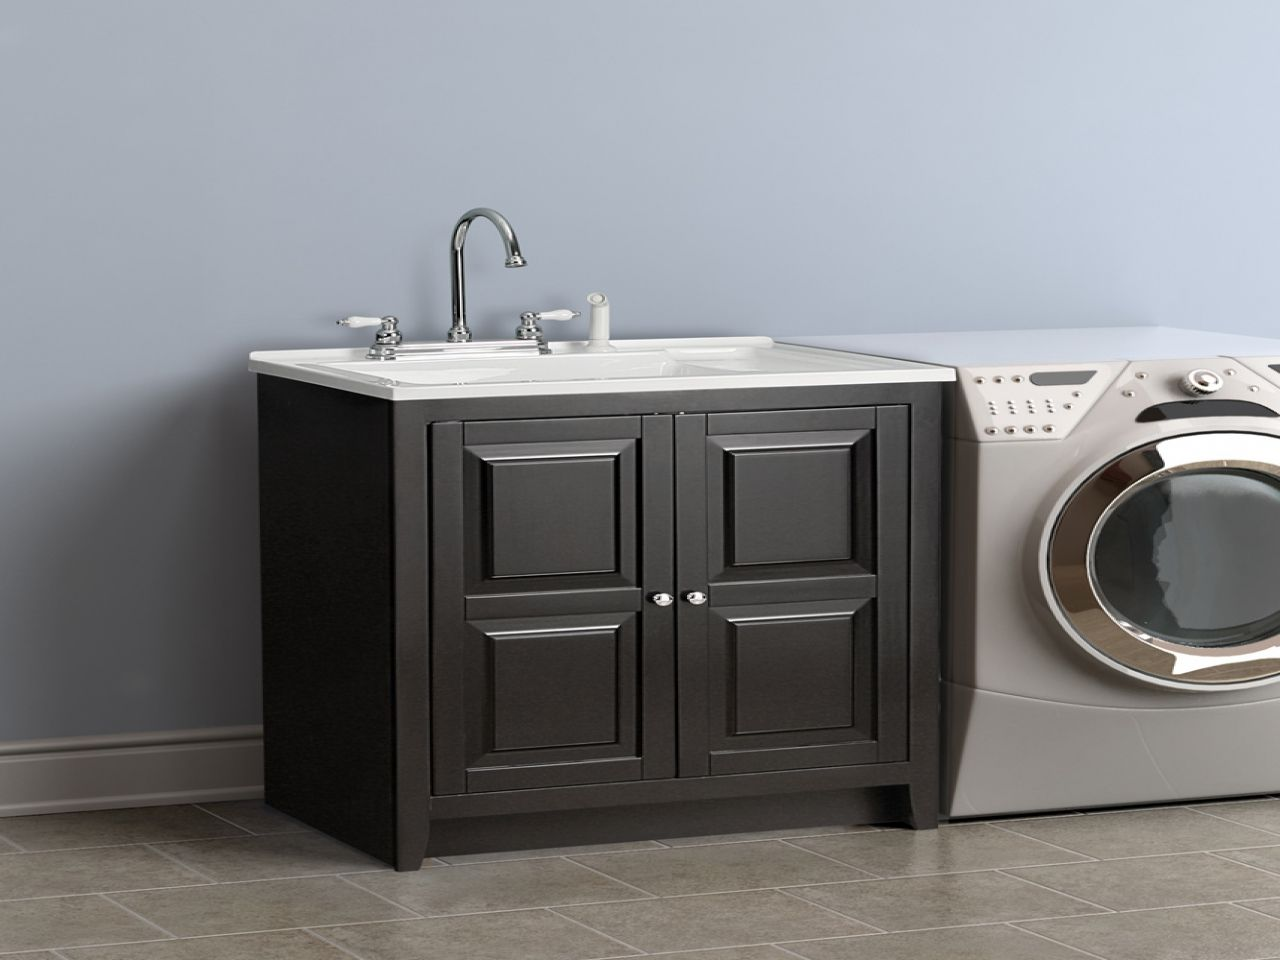 Best stainless steel laundry sink with faucet and storage